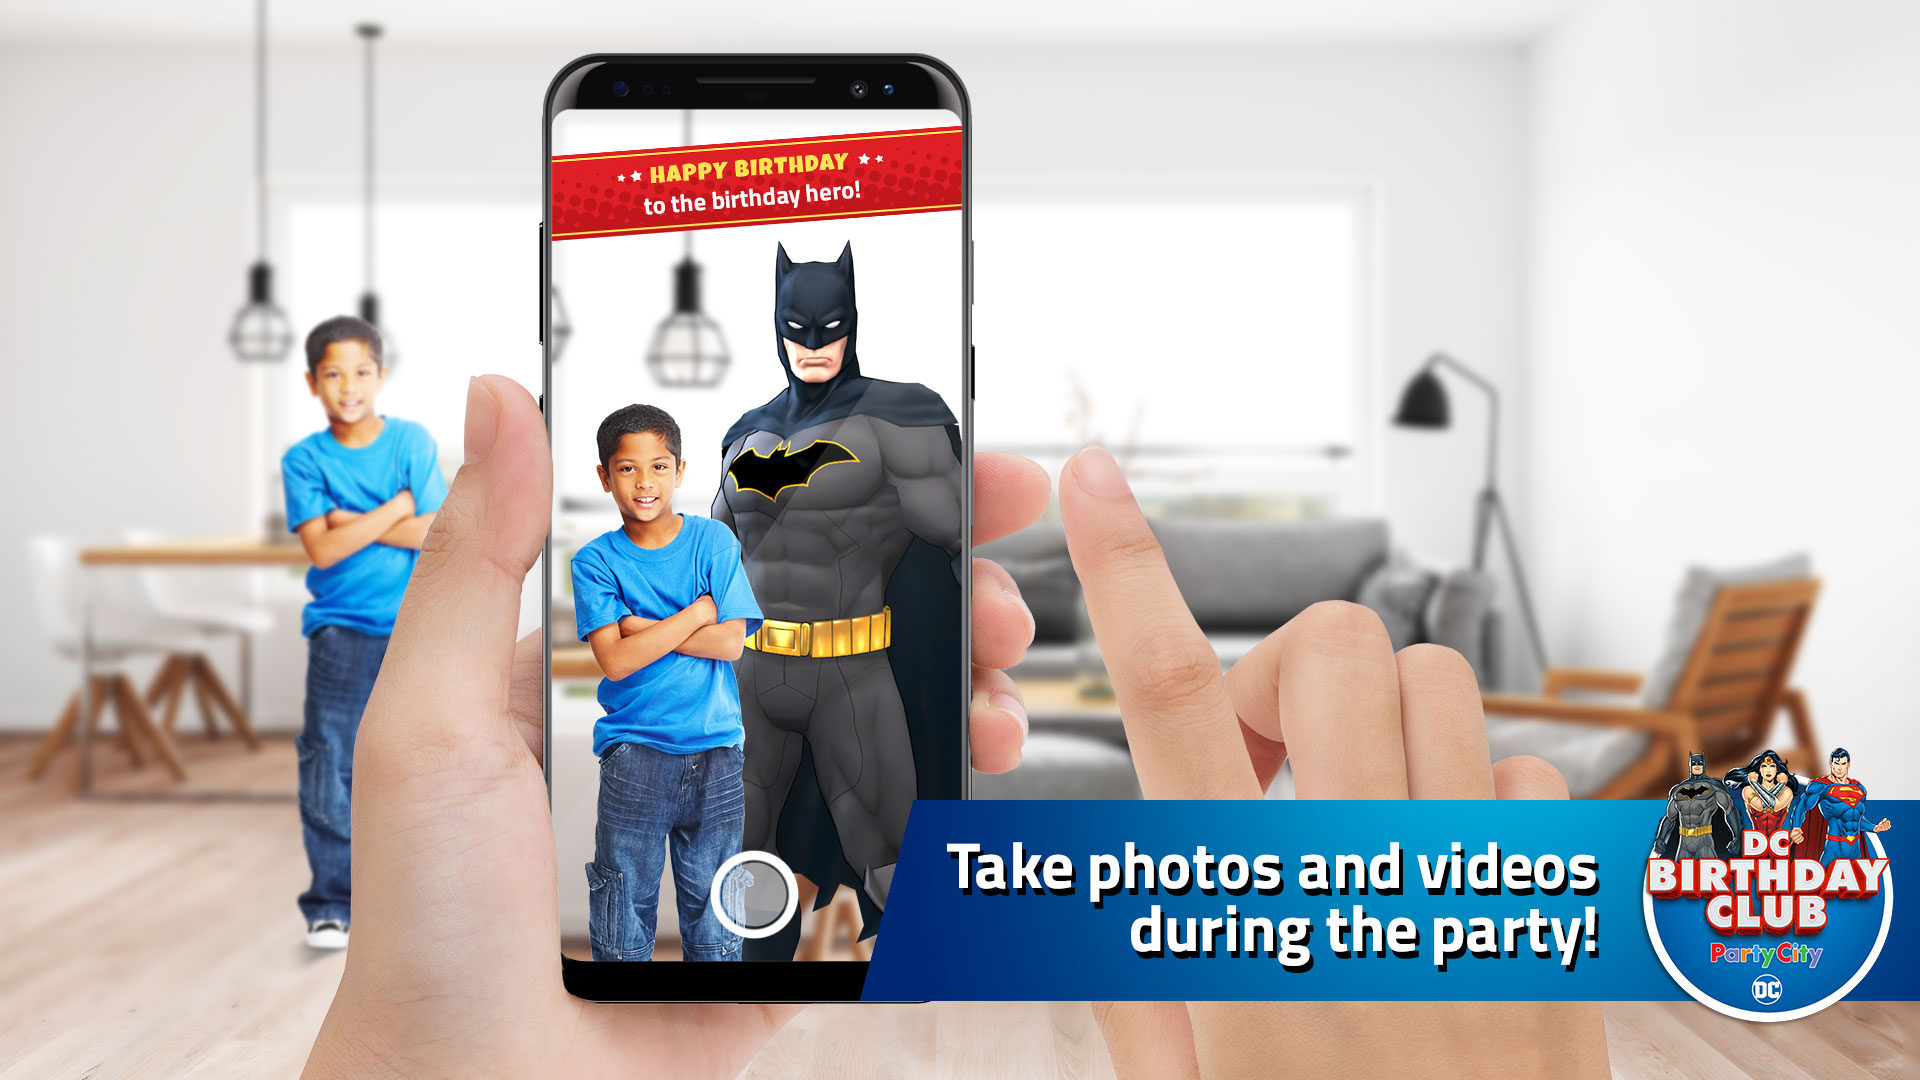 Take photos and videos during the party!